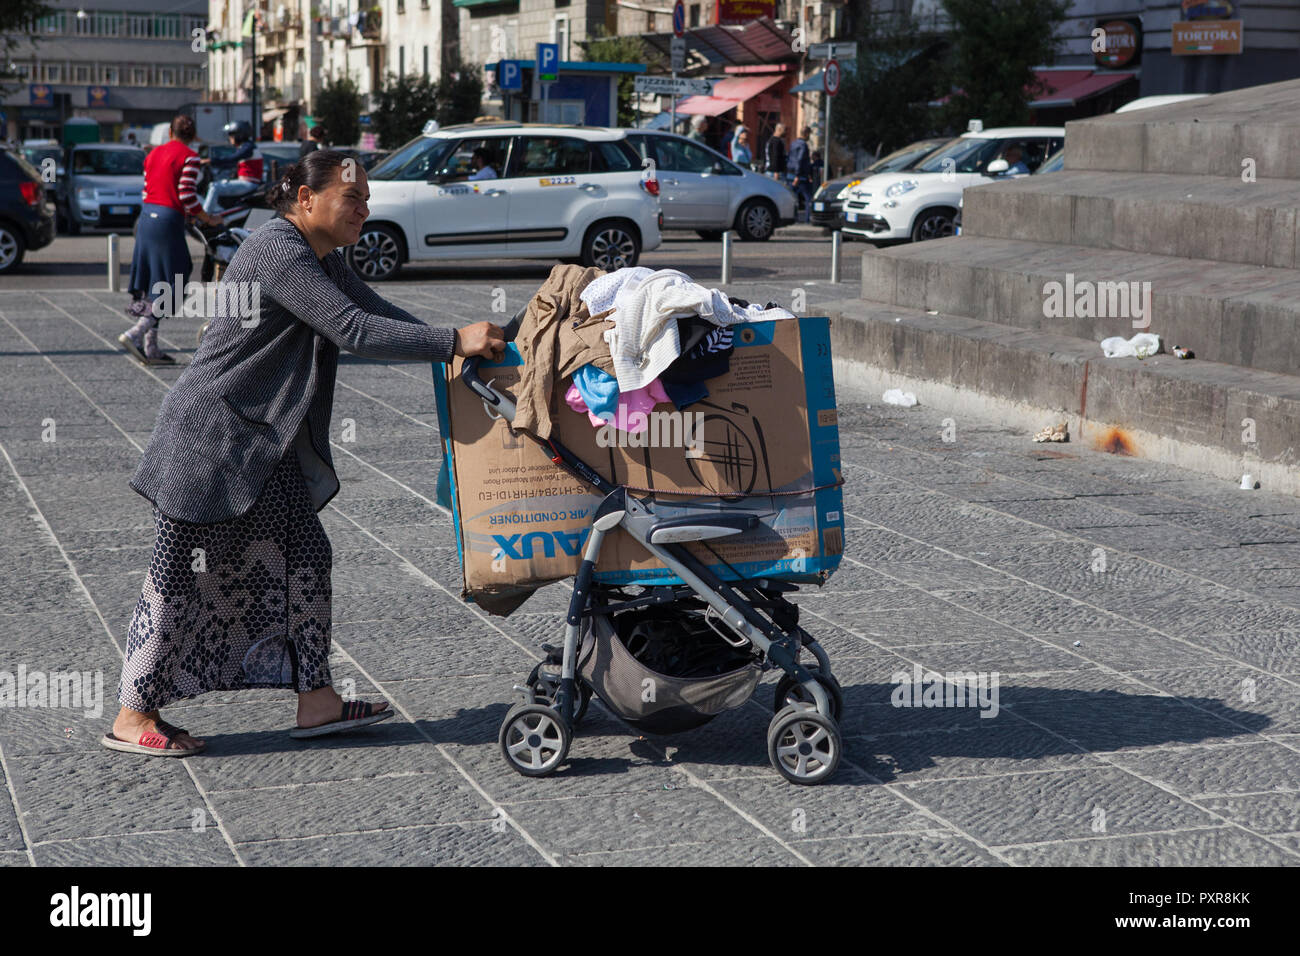 A homeless migrant pushes her belongings through the streets of Naples, Italy - Stock Image